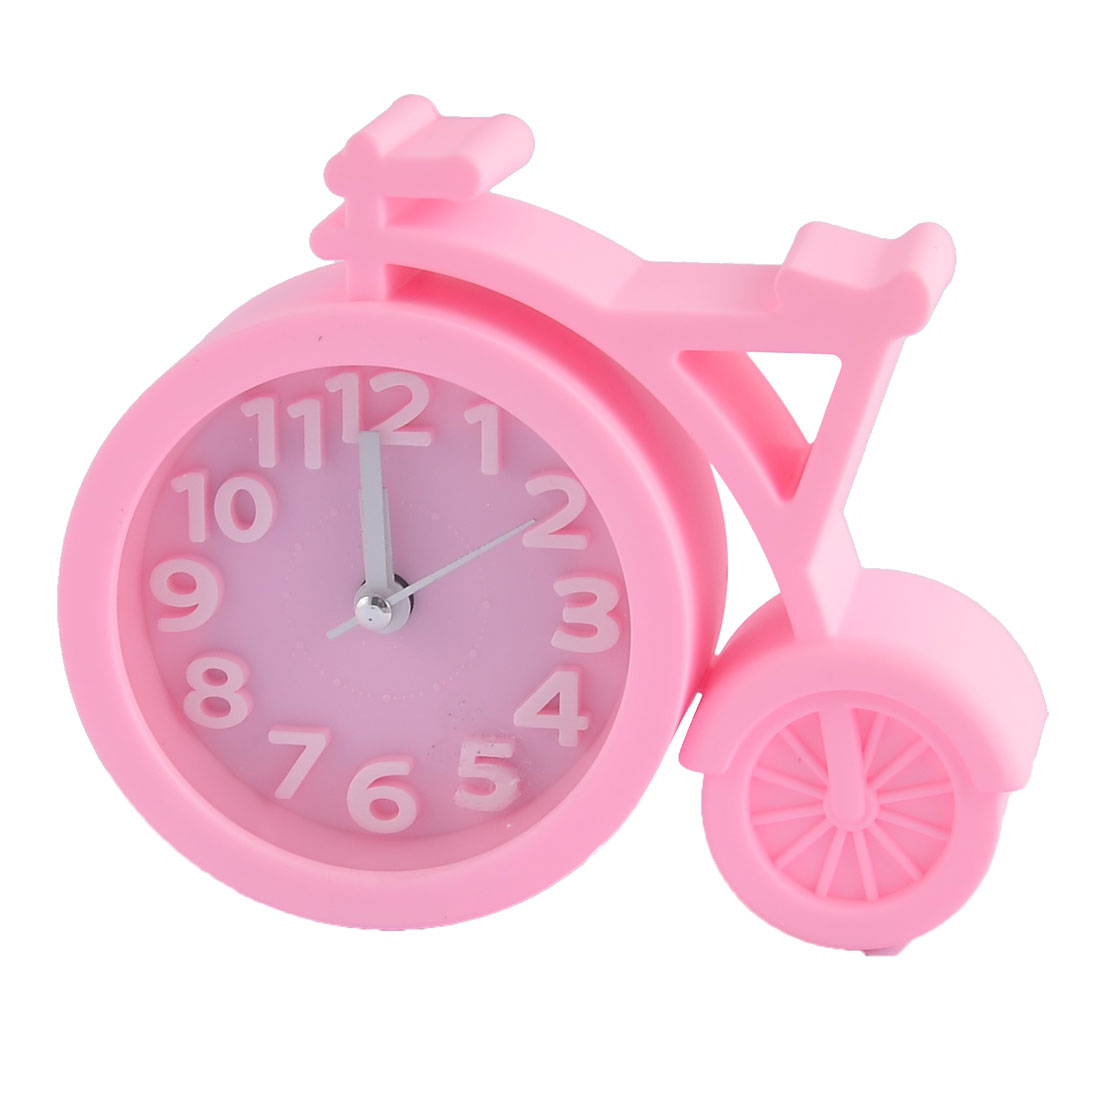 Household Office Desktop Plastic Bike Shaped Silent Battery Powered Arabic Number Alarm Clock Pink